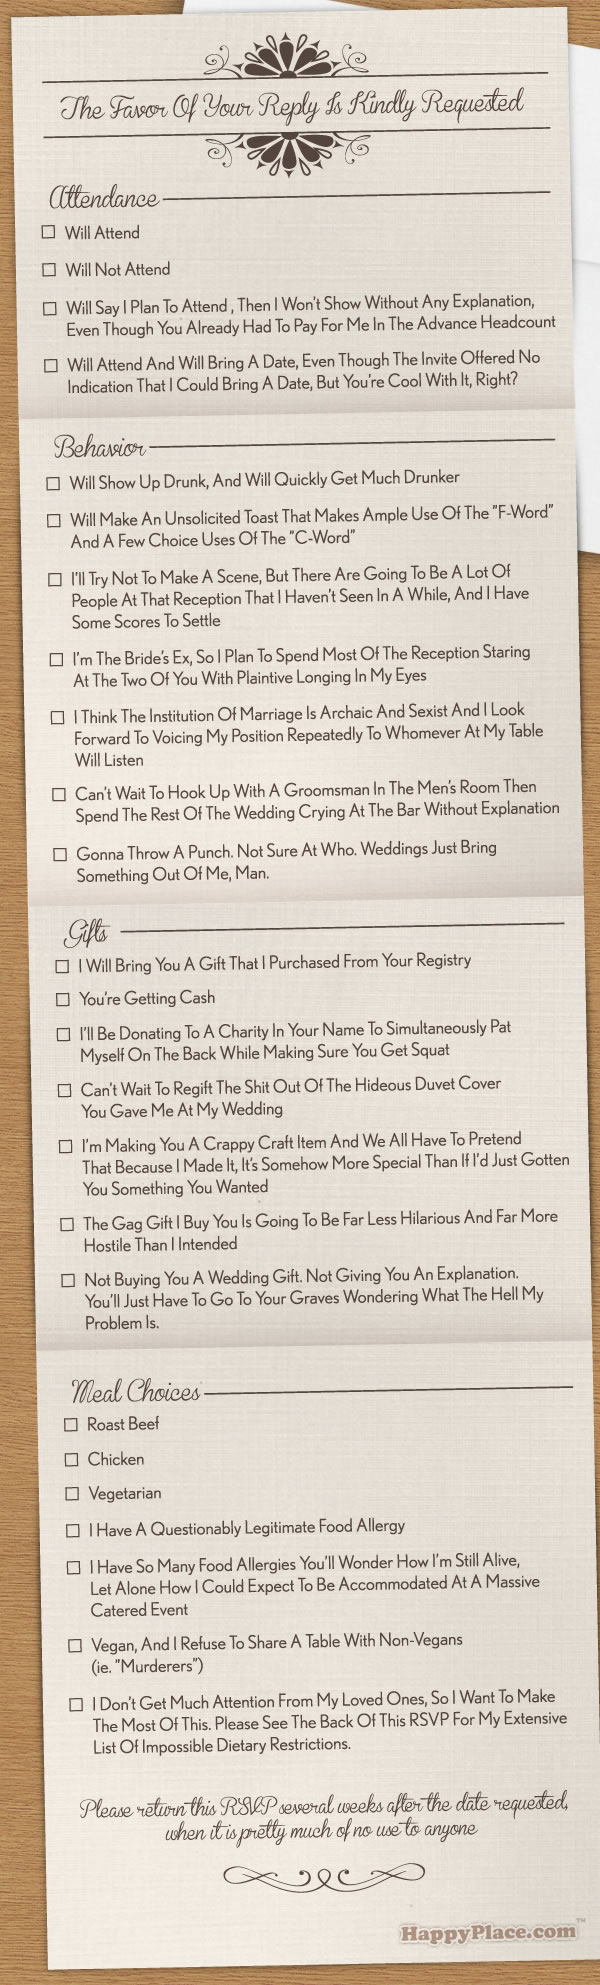 Graphic: RSVP card for wedding with hilarious checkboxes, too many to list here.